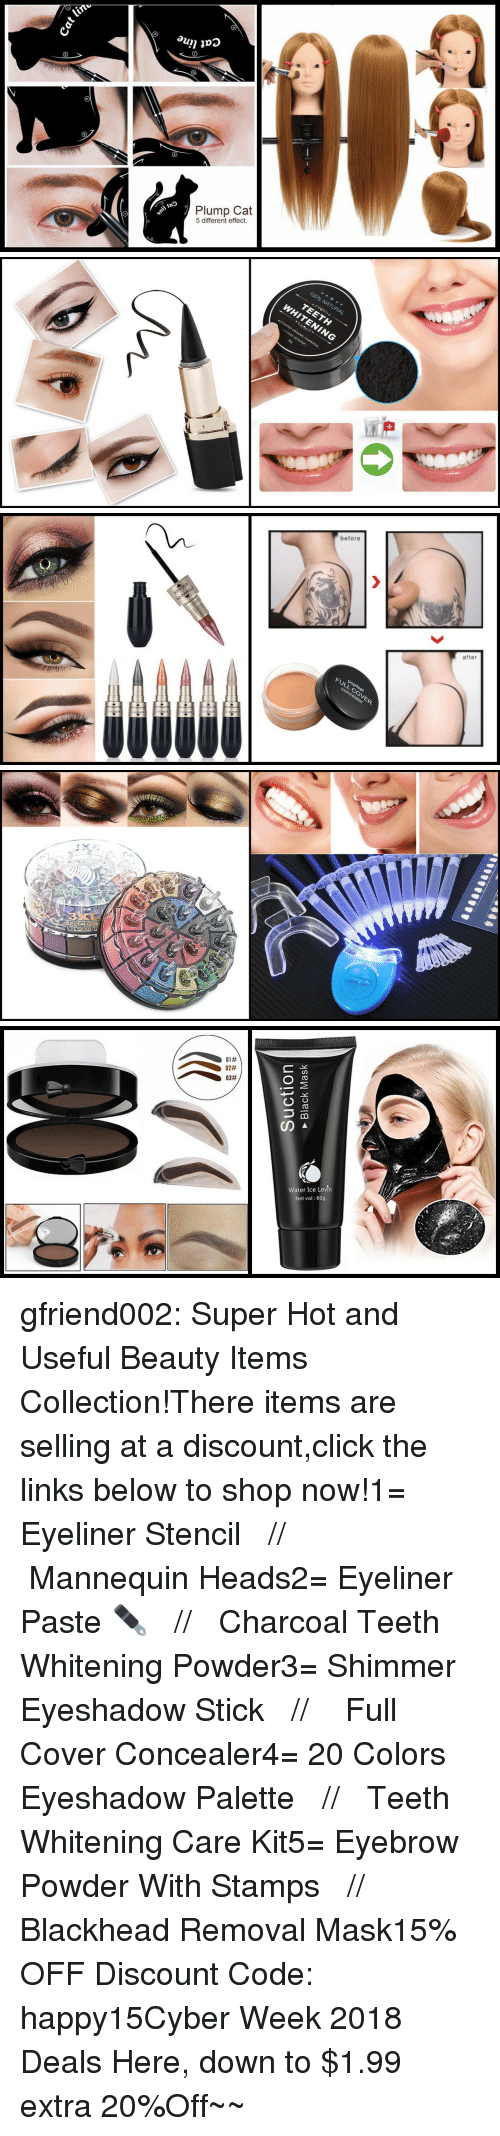 Anaconda, Click, and Target: Cat  5 different effect.   100% NATURAL  TEETH   before  after  FULL CO   XL  EVEN G   01#  02#  03#  Water Ice Levin  Net vol: 60g gfriend002:  Super Hot and Useful Beauty Items Collection!There items are selling at a discount,click the links below to shop now!1= Eyeliner Stencil   //    Mannequin Heads2= Eyeliner Paste ✒️   //   Charcoal Teeth Whitening Powder3= Shimmer Eyeshadow Stick   //    Full Cover Concealer4= 20 Colors Eyeshadow Palette   //   Teeth Whitening Care Kit5= Eyebrow Powder With Stamps   //   Blackhead Removal Mask15% OFF Discount Code: happy15☞Cyber Week 2018 Deals Here, down to $1.99  extra 20%Off~~